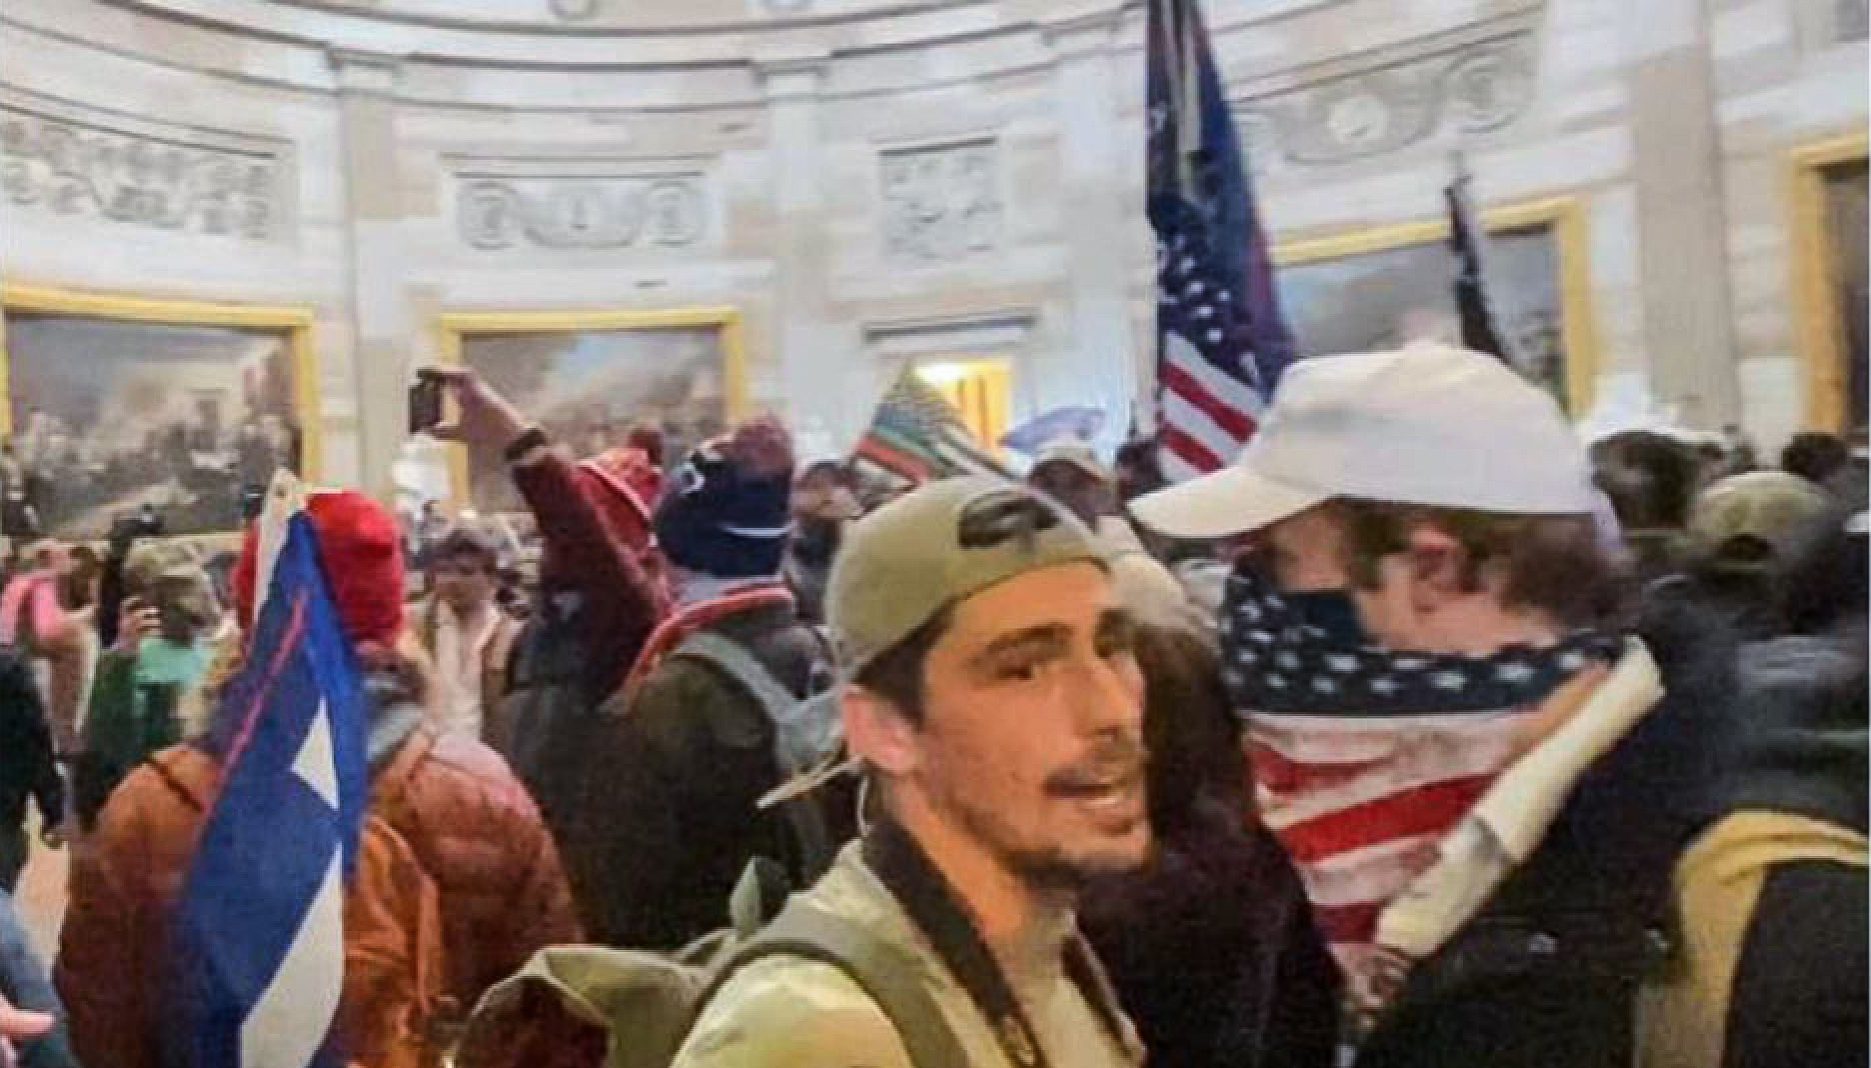 Actor arrested in connection with Capitol riot; FBI cites evidence from his Instagram